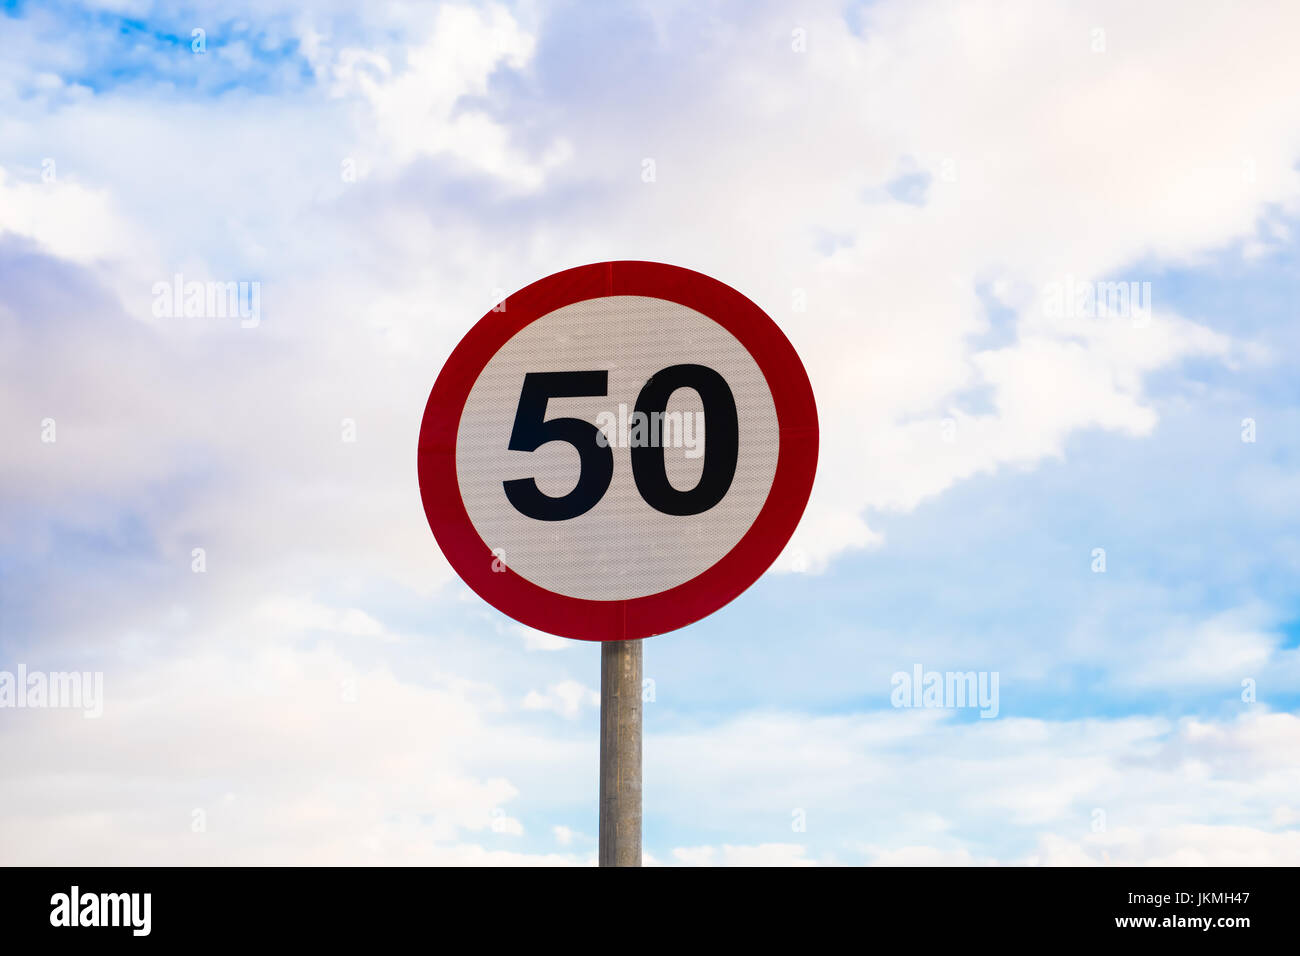 Road sign speed limit to 50, traffic sign in blue sky background Stock Photo